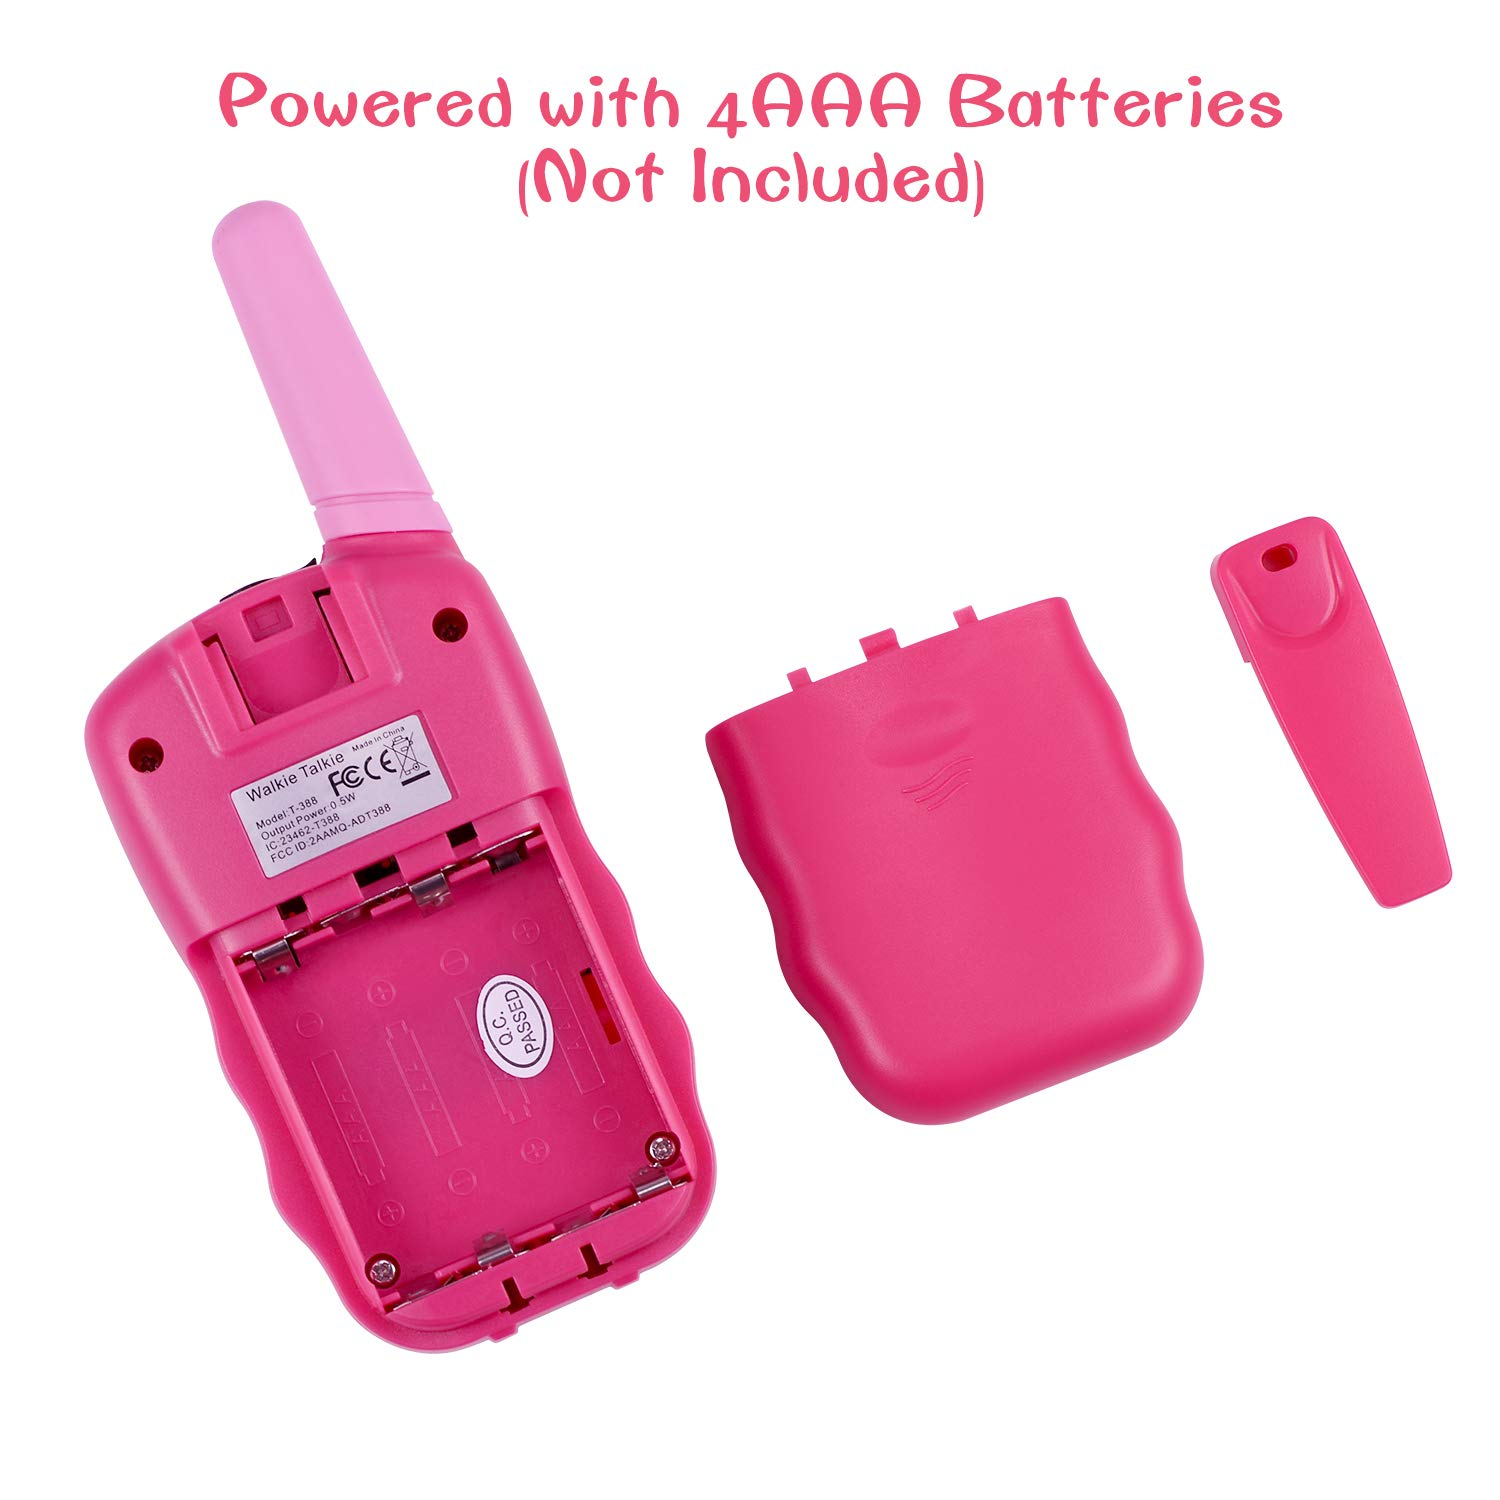 SnowCinda Toys for 3-12 Year Old Girls,Walkie Talkies for Kids with 22 Channels 2 Way Radio 3 Miles Long Range Toy for Outside Adventures, Best Gifts for 4-8 Year Old Boys and Girls by SnowCinda (Image #3)